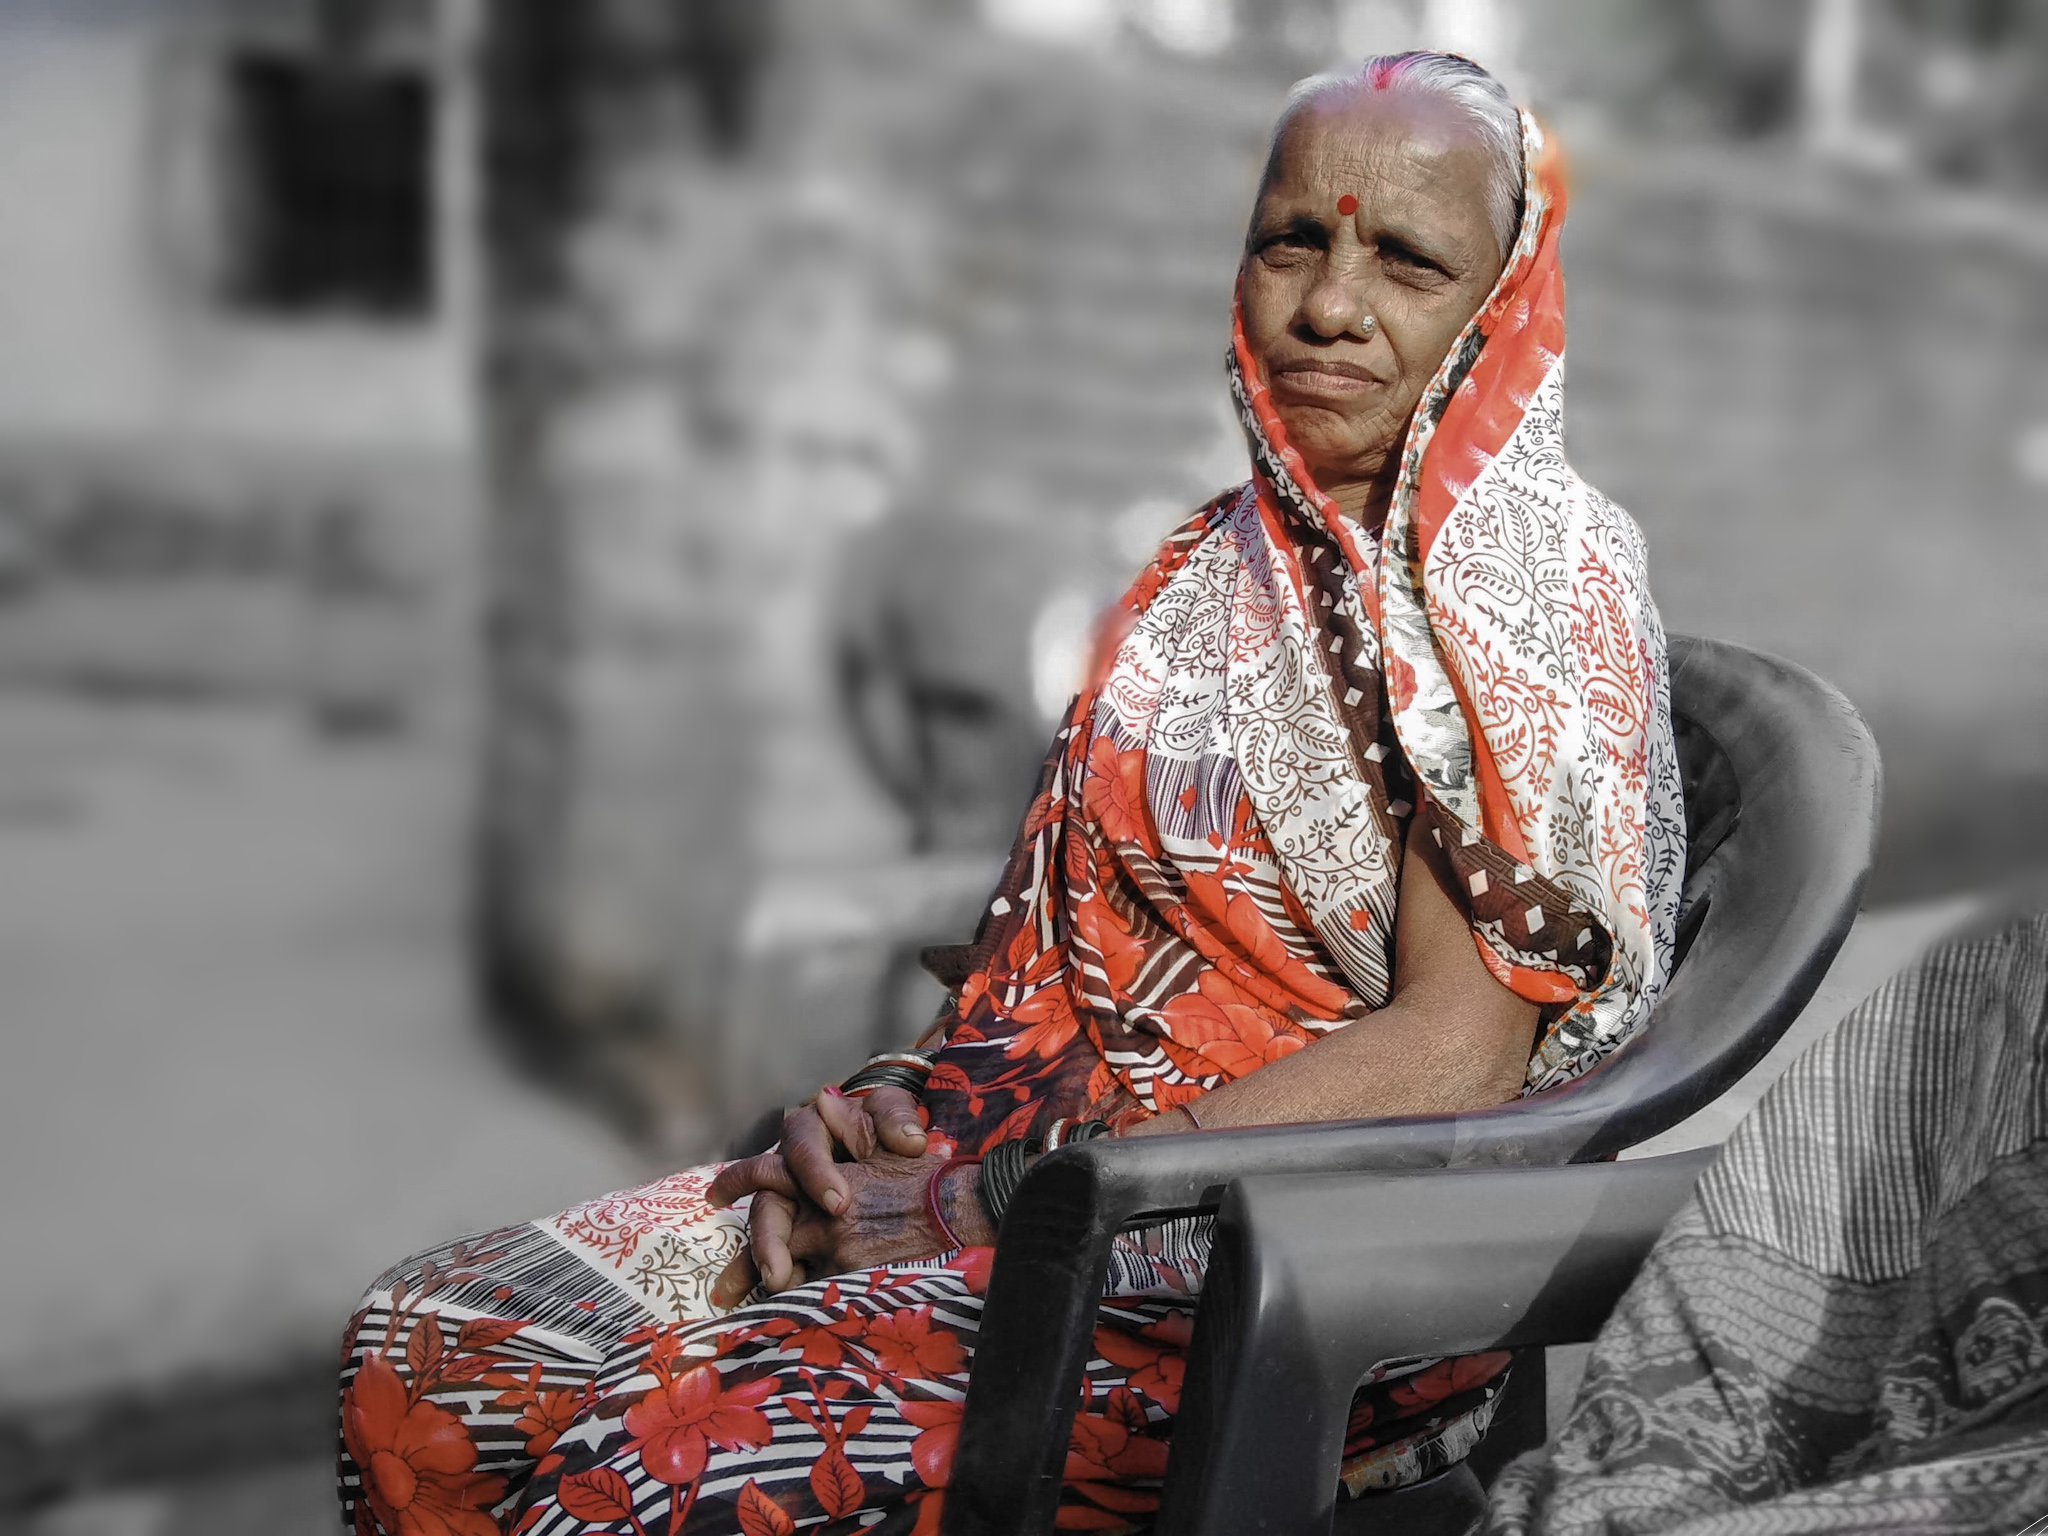 An old lady on a chair